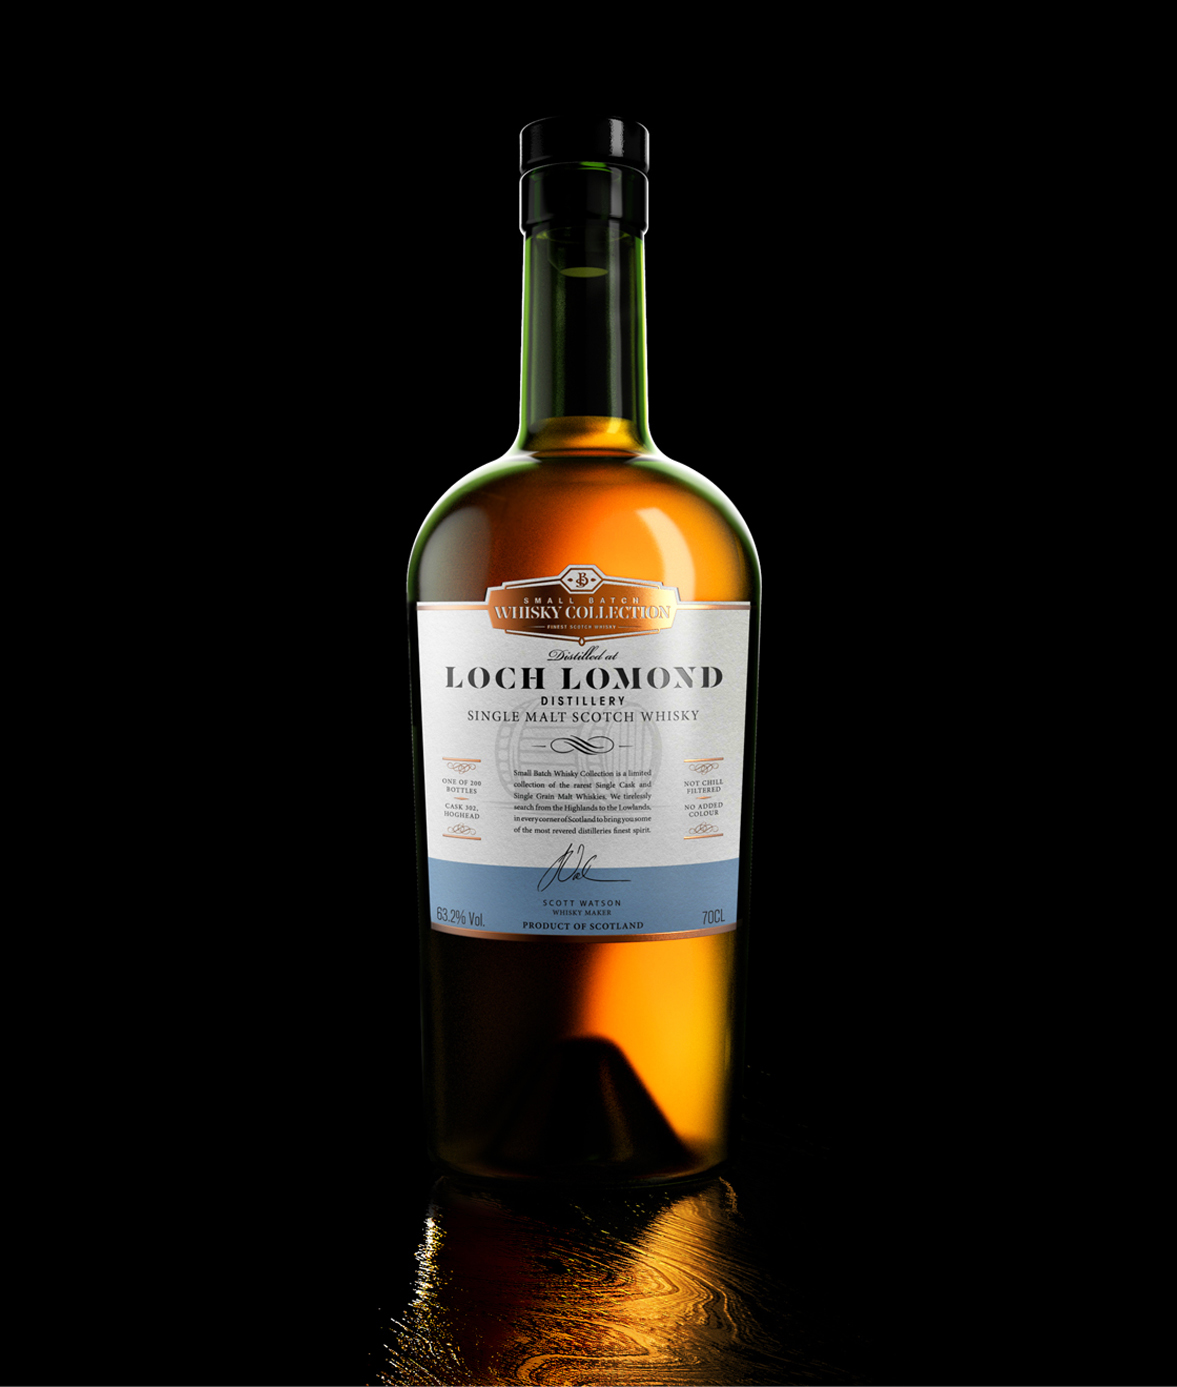 Lochlomond Straight Bottle Filled With Top